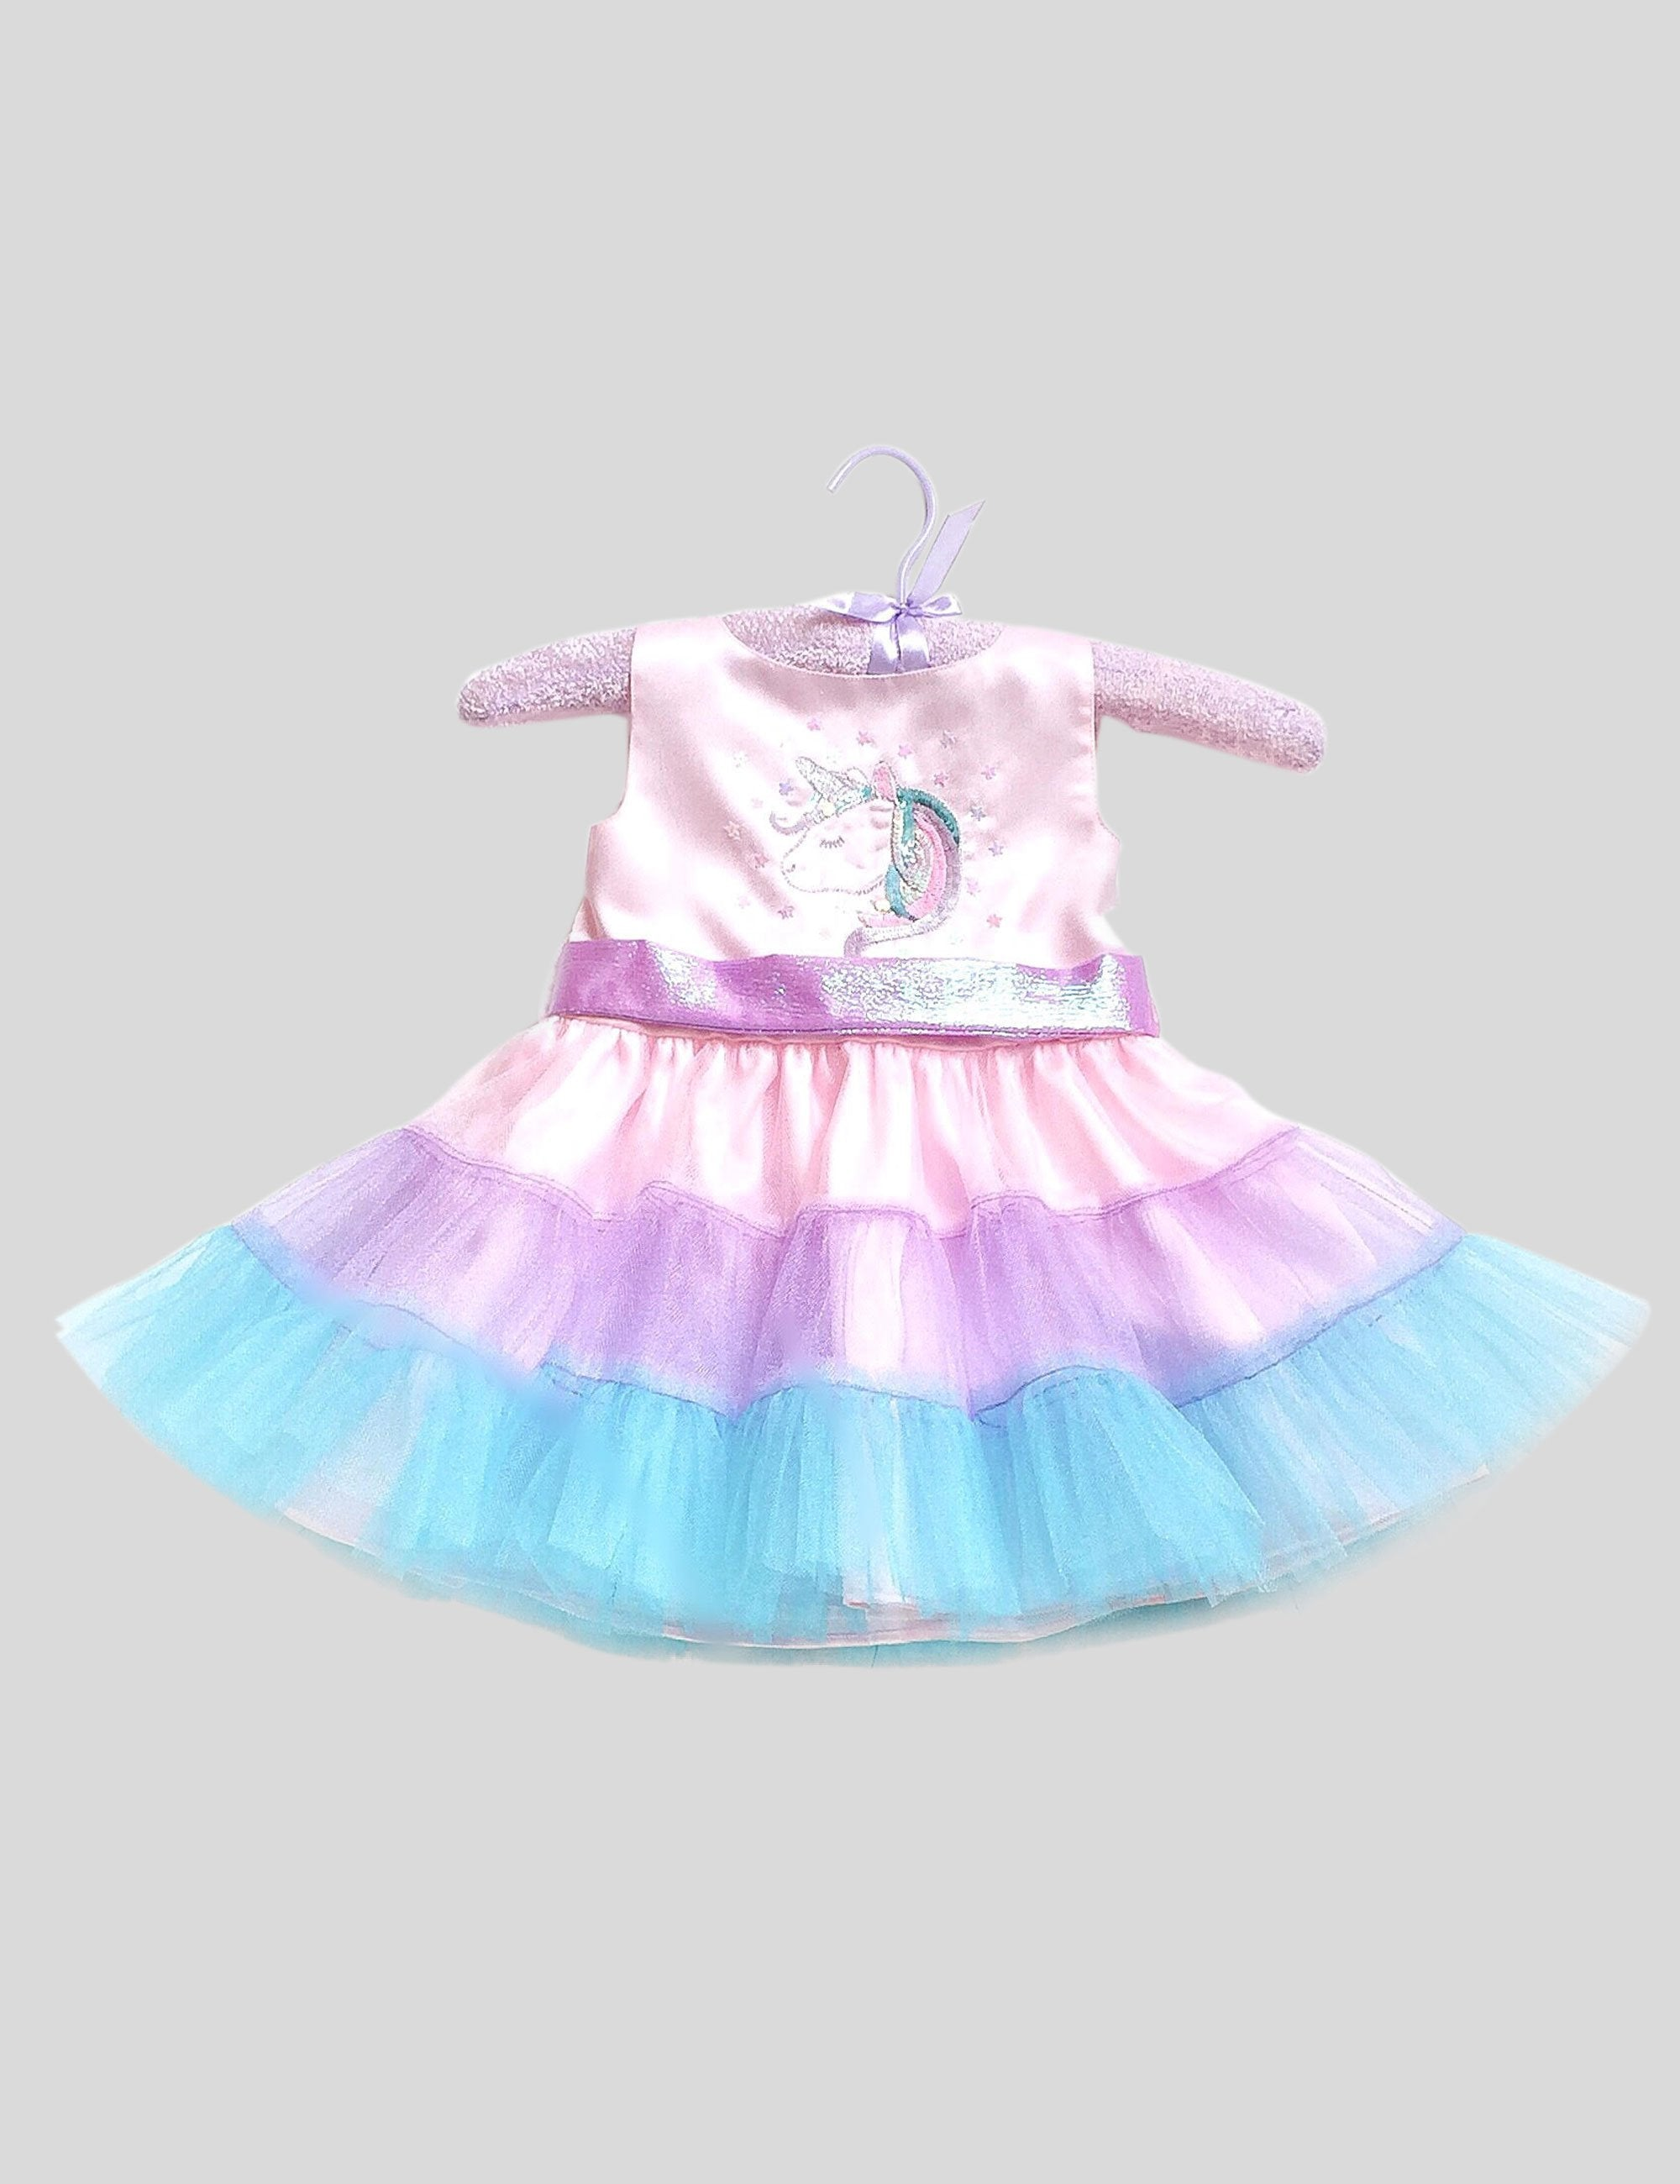 A Unicorn Dress in Multi-Colour for Girls